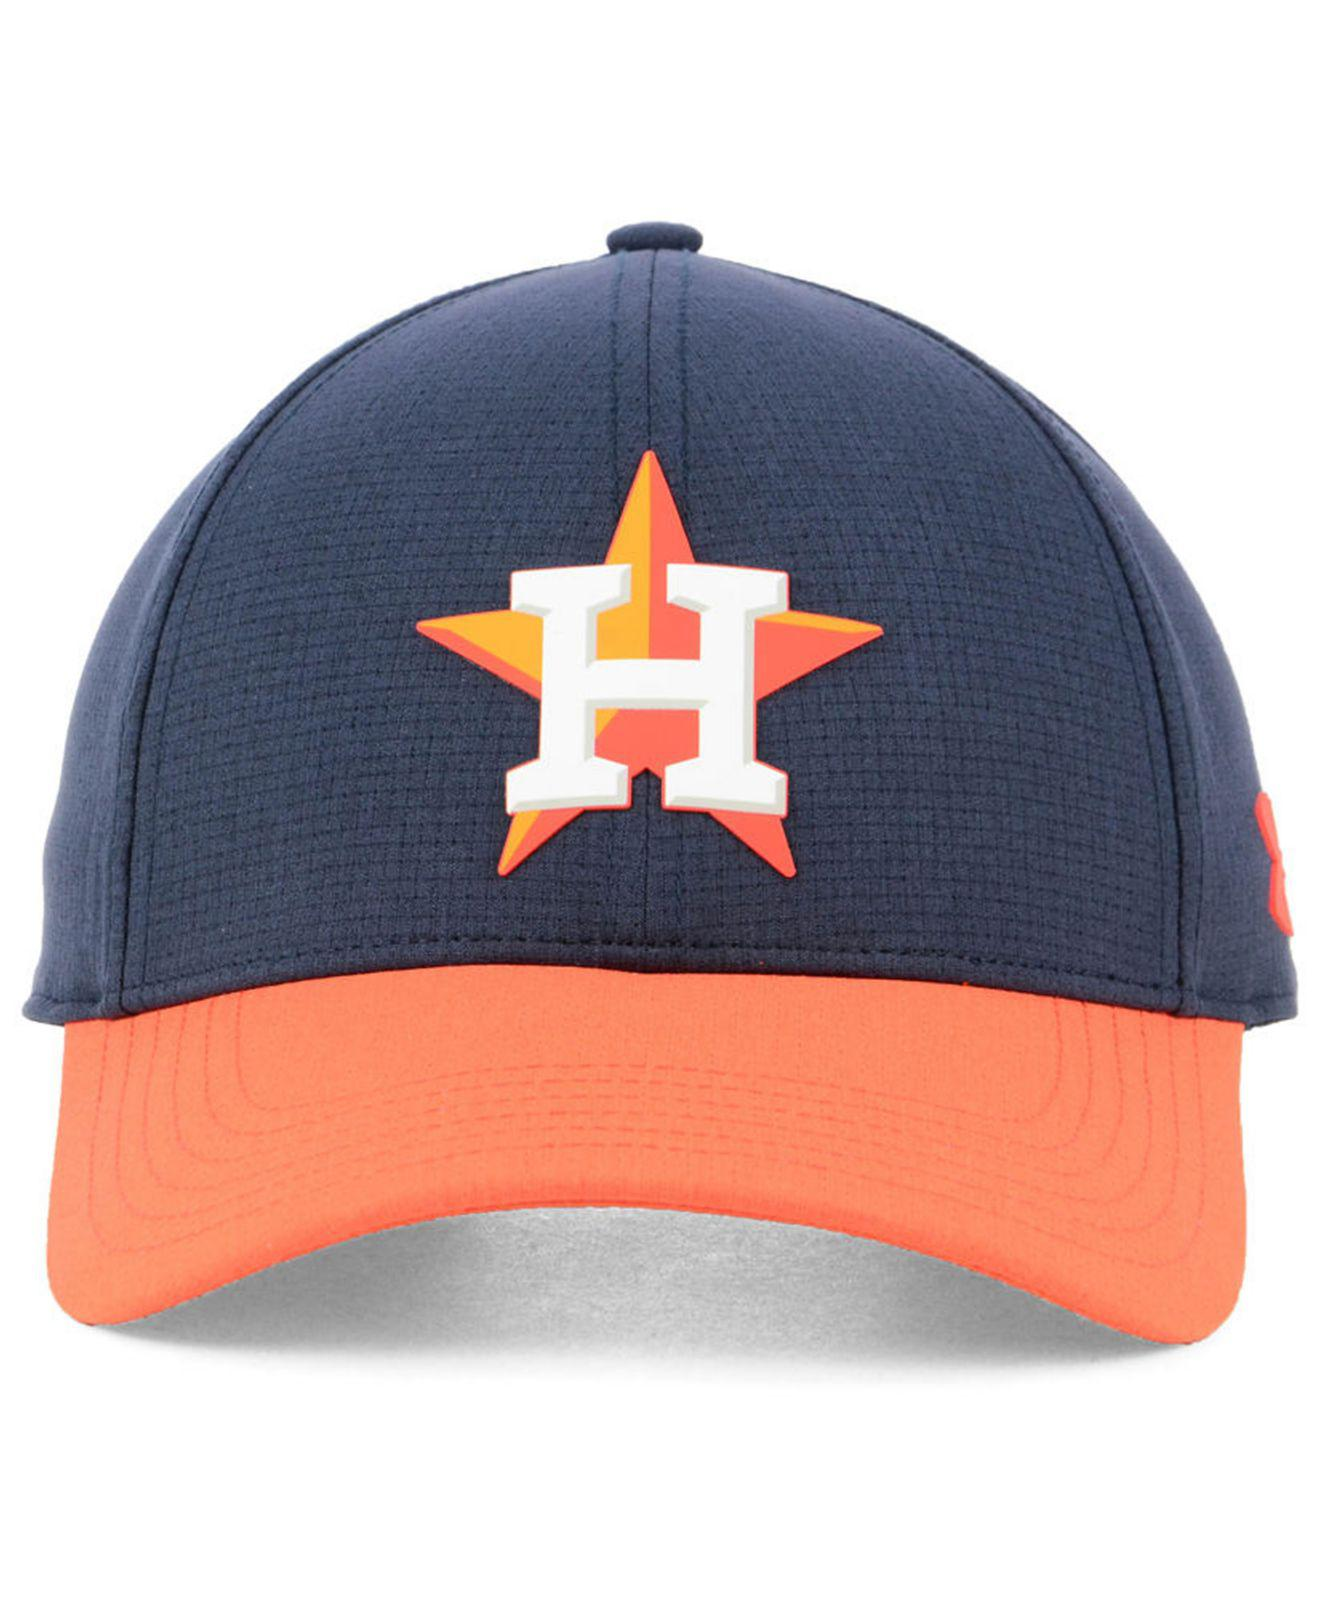 d6f454a91bf Lyst - Under Armour Houston Astros Driver Cap in Blue for Men